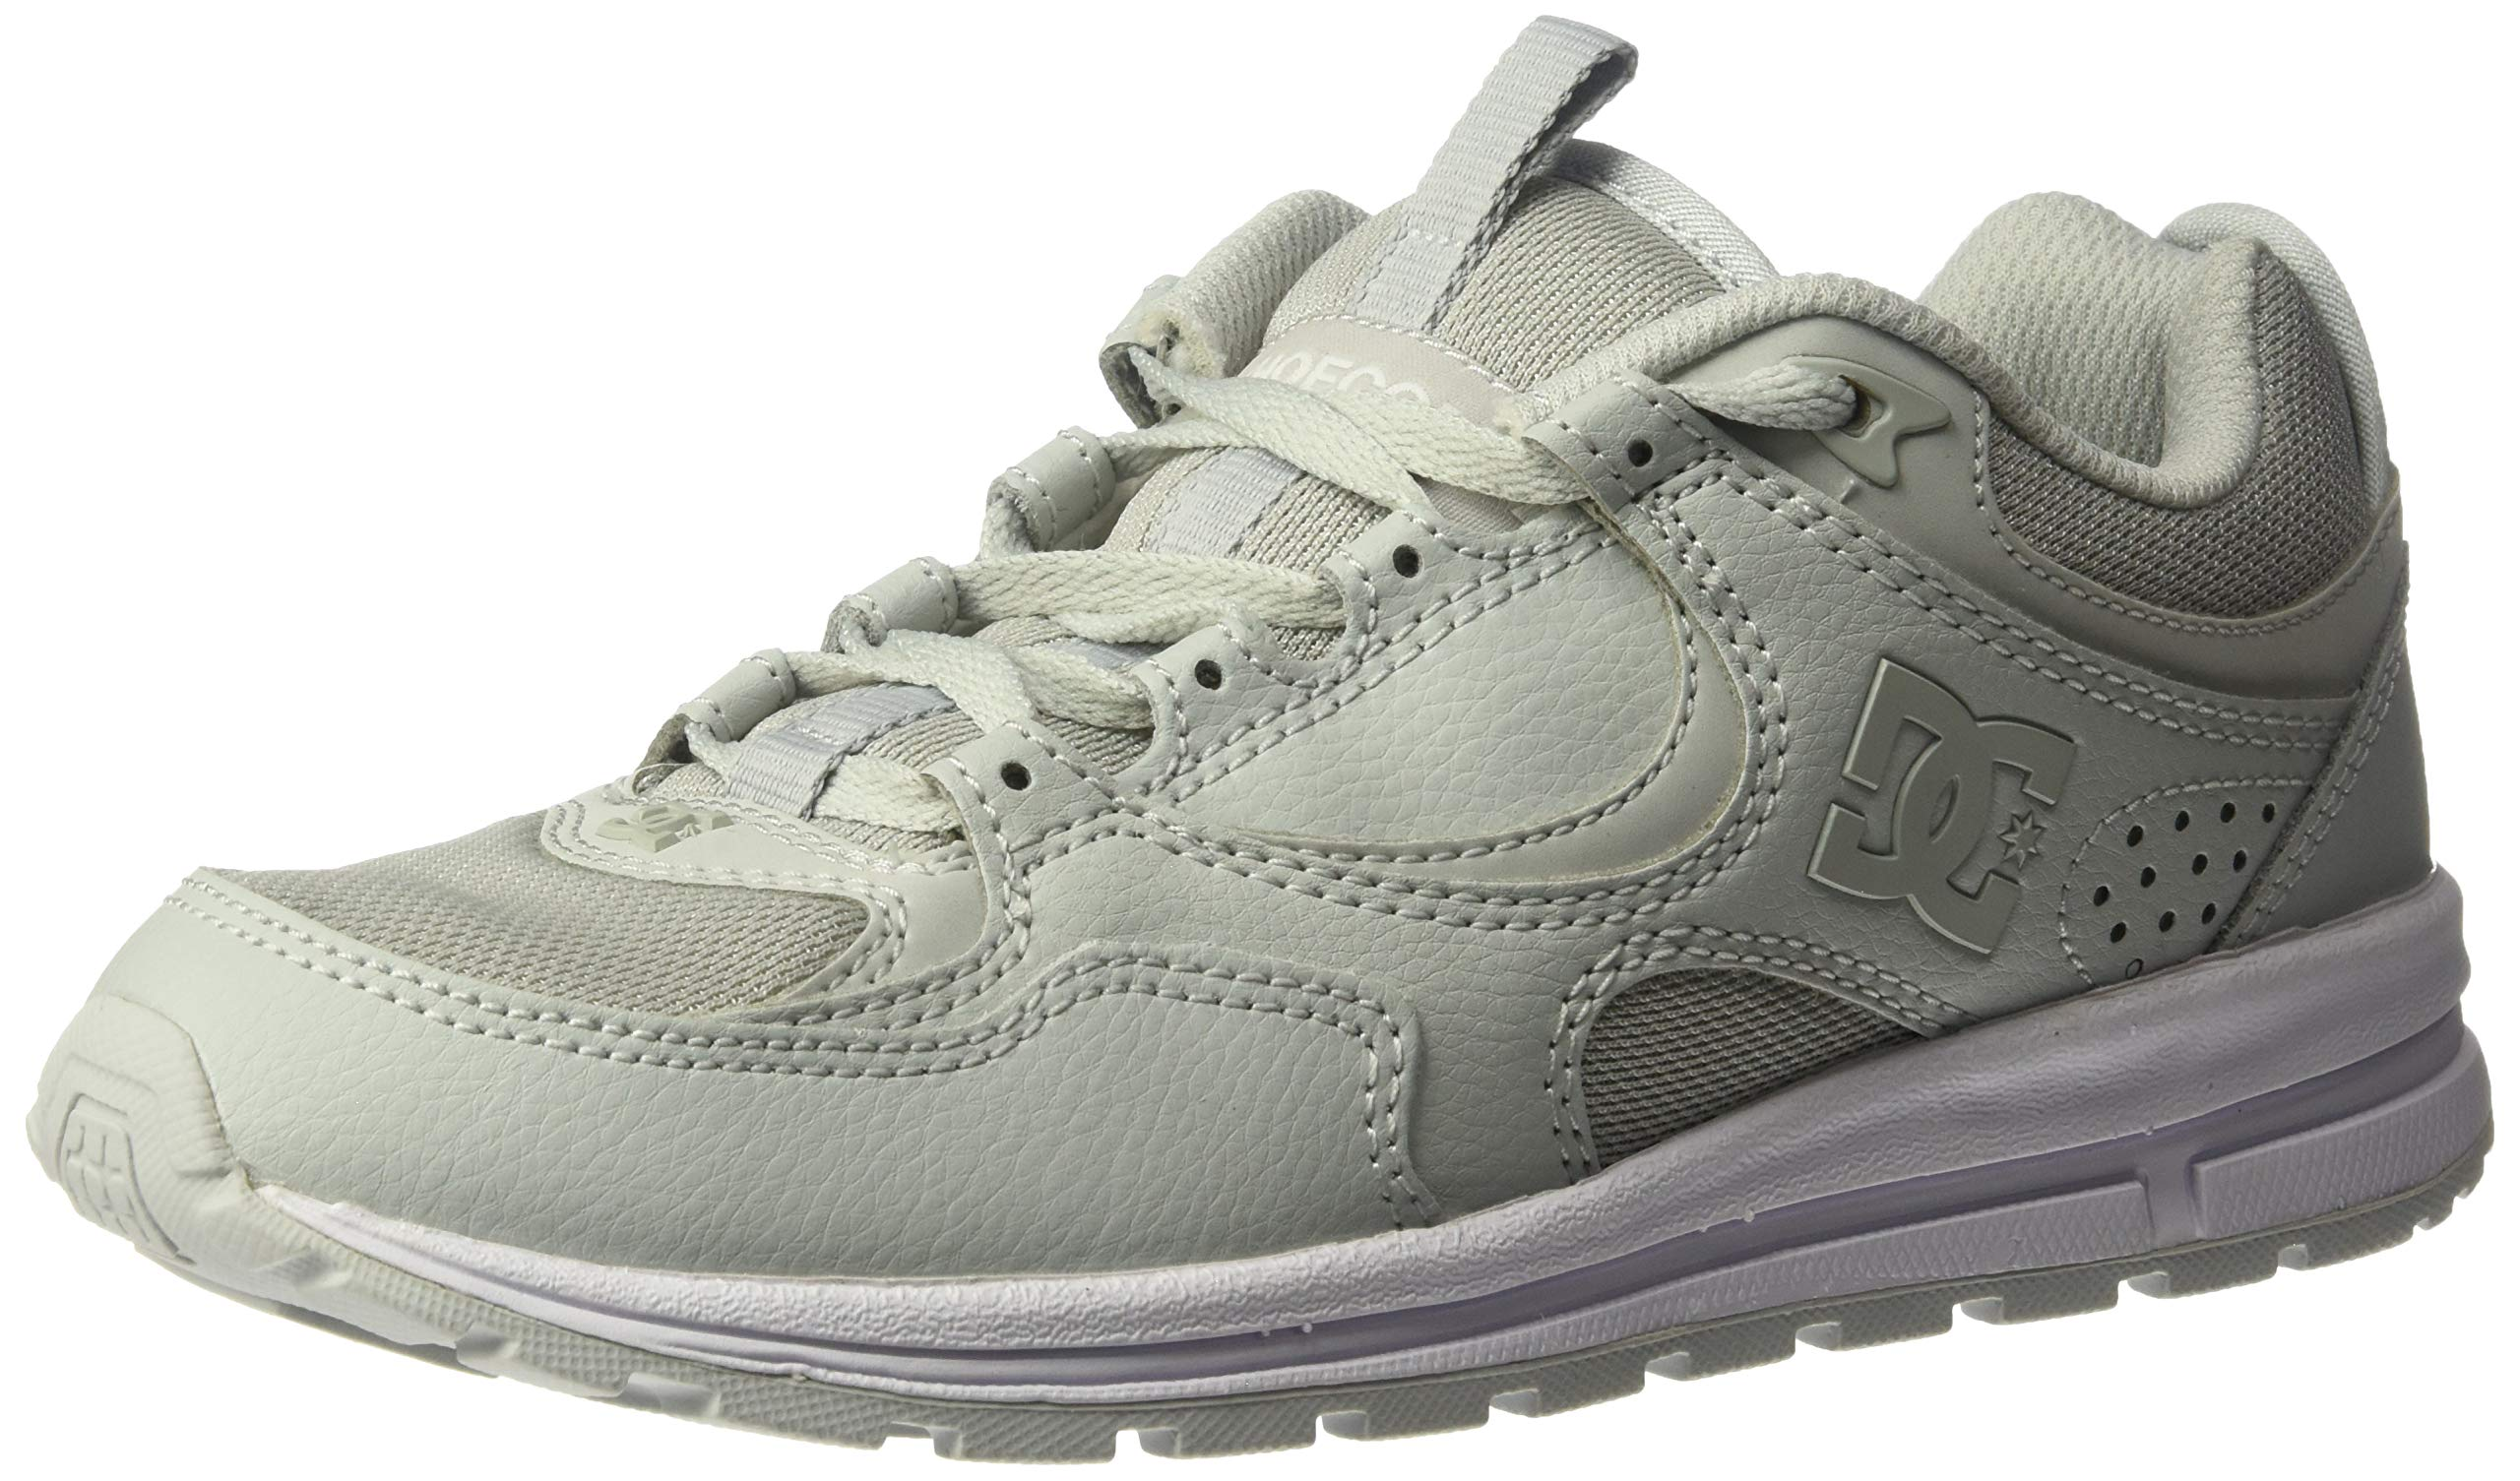 DC Women's Kalis LITE Skate Shoe, Grey, 8 M US by DC